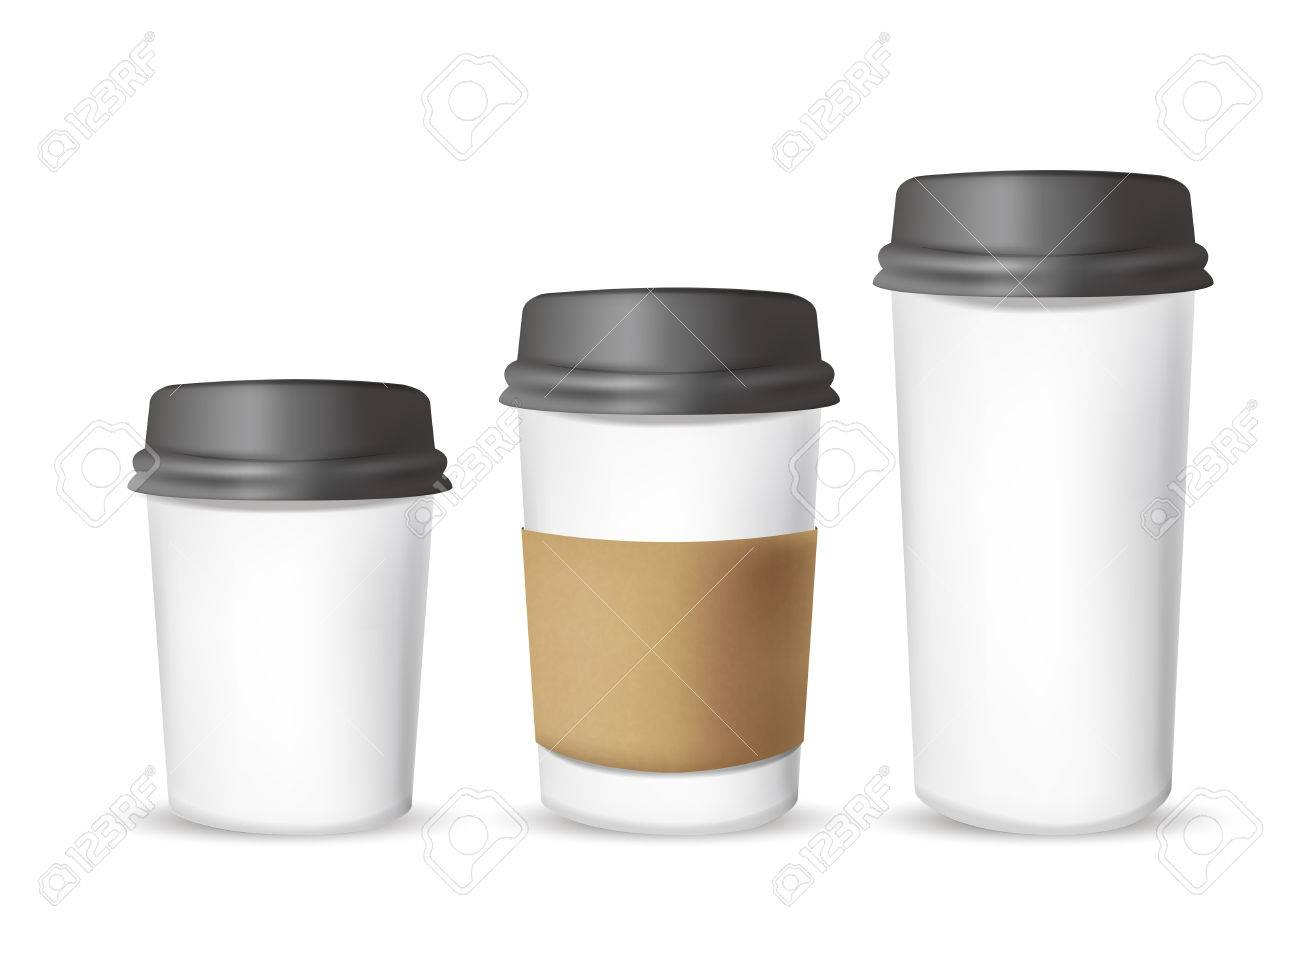 takeout coffee cup templates over white background royalty free